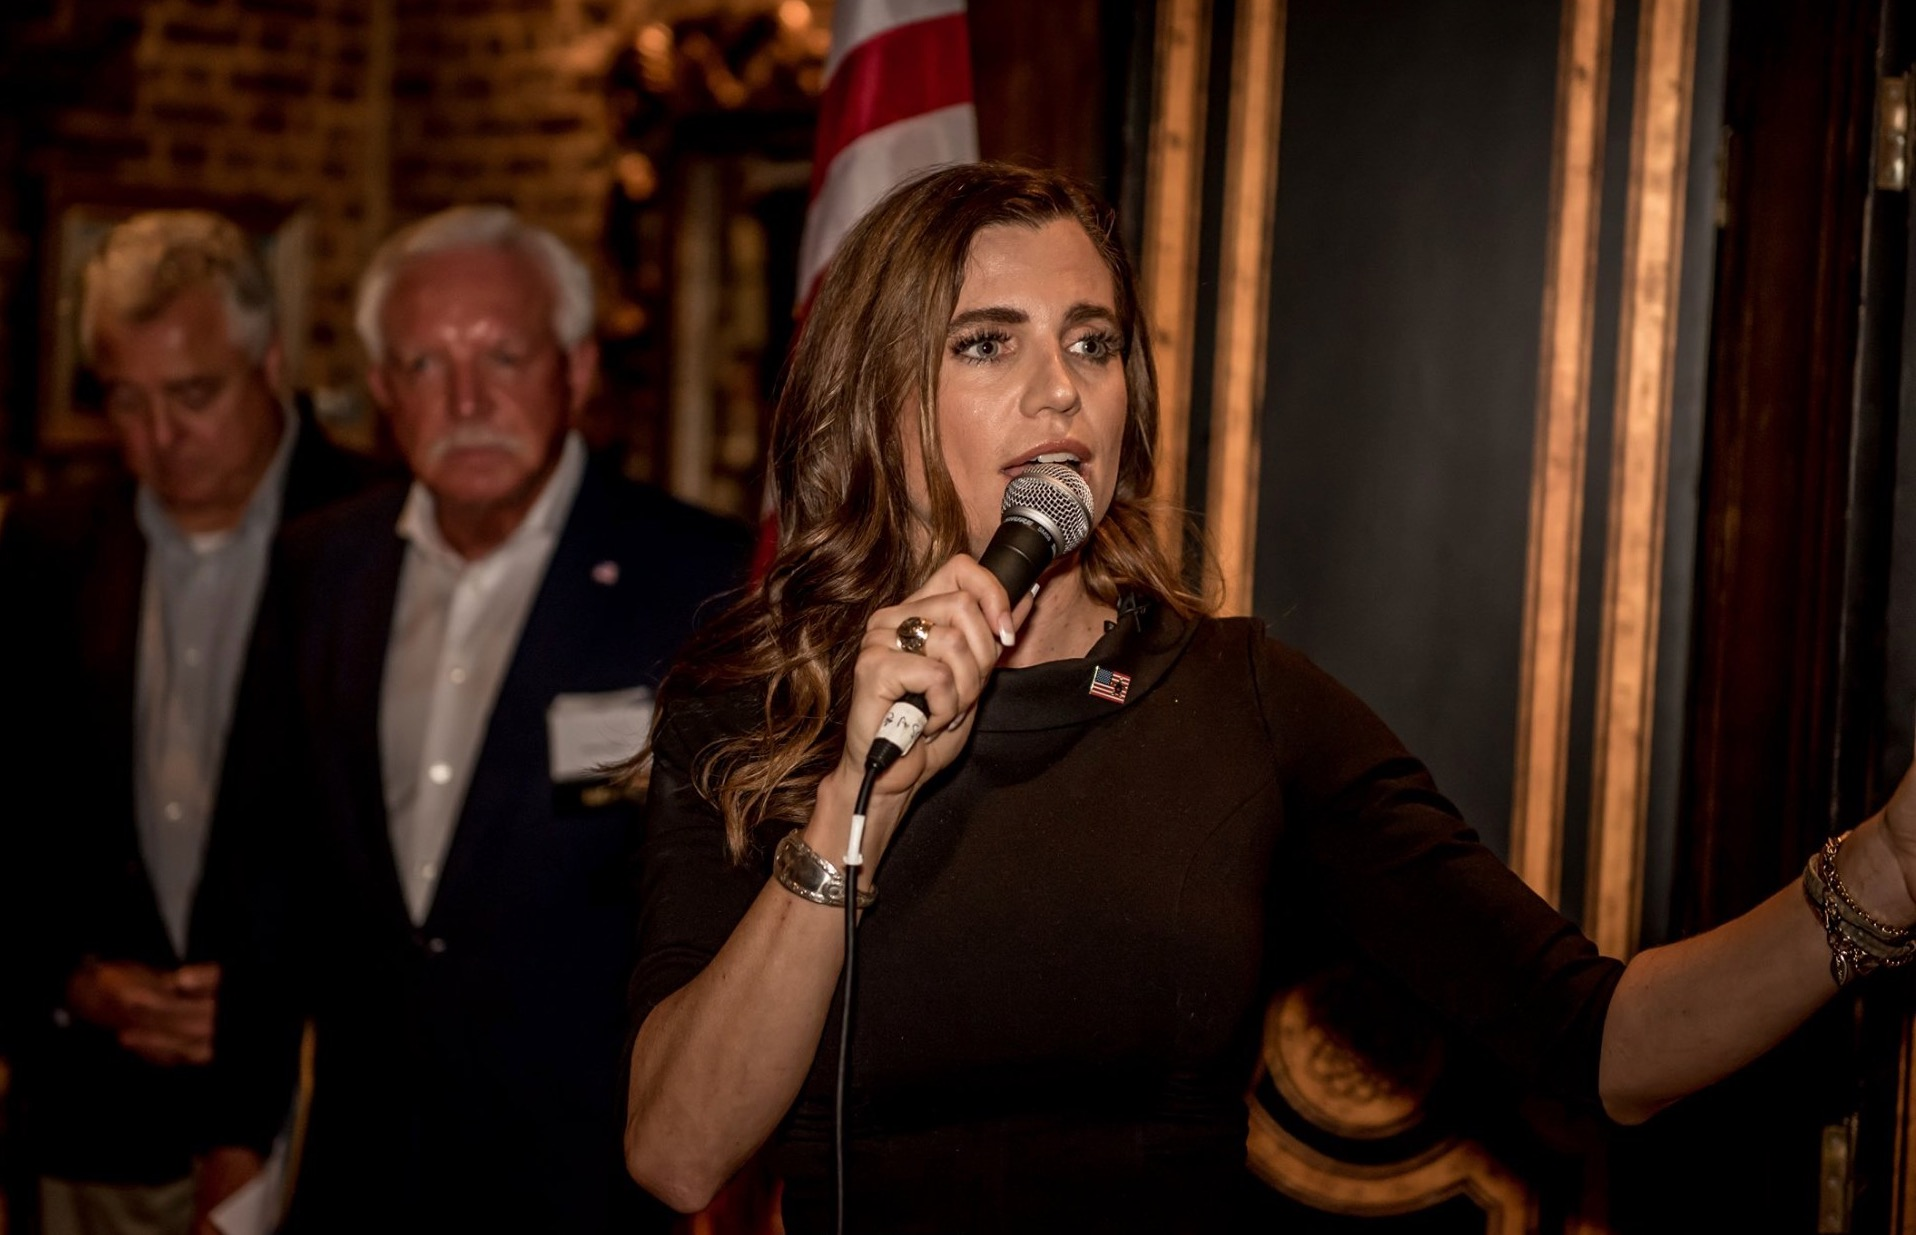 SC first congressional district candidate Nancy Mace